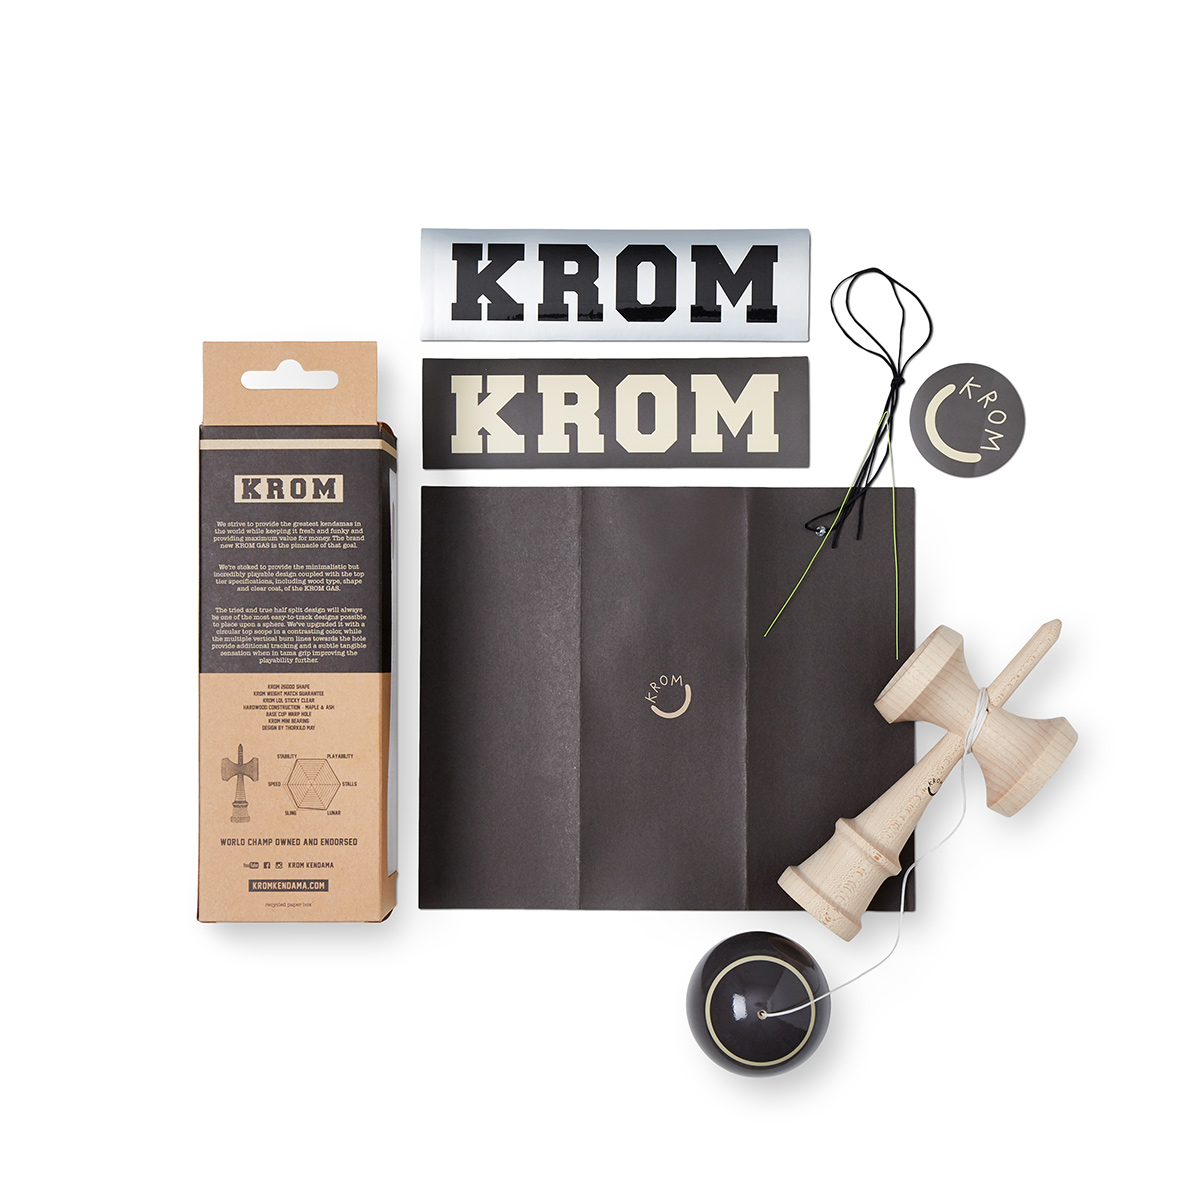 KROM - GAS - CHARCOAL